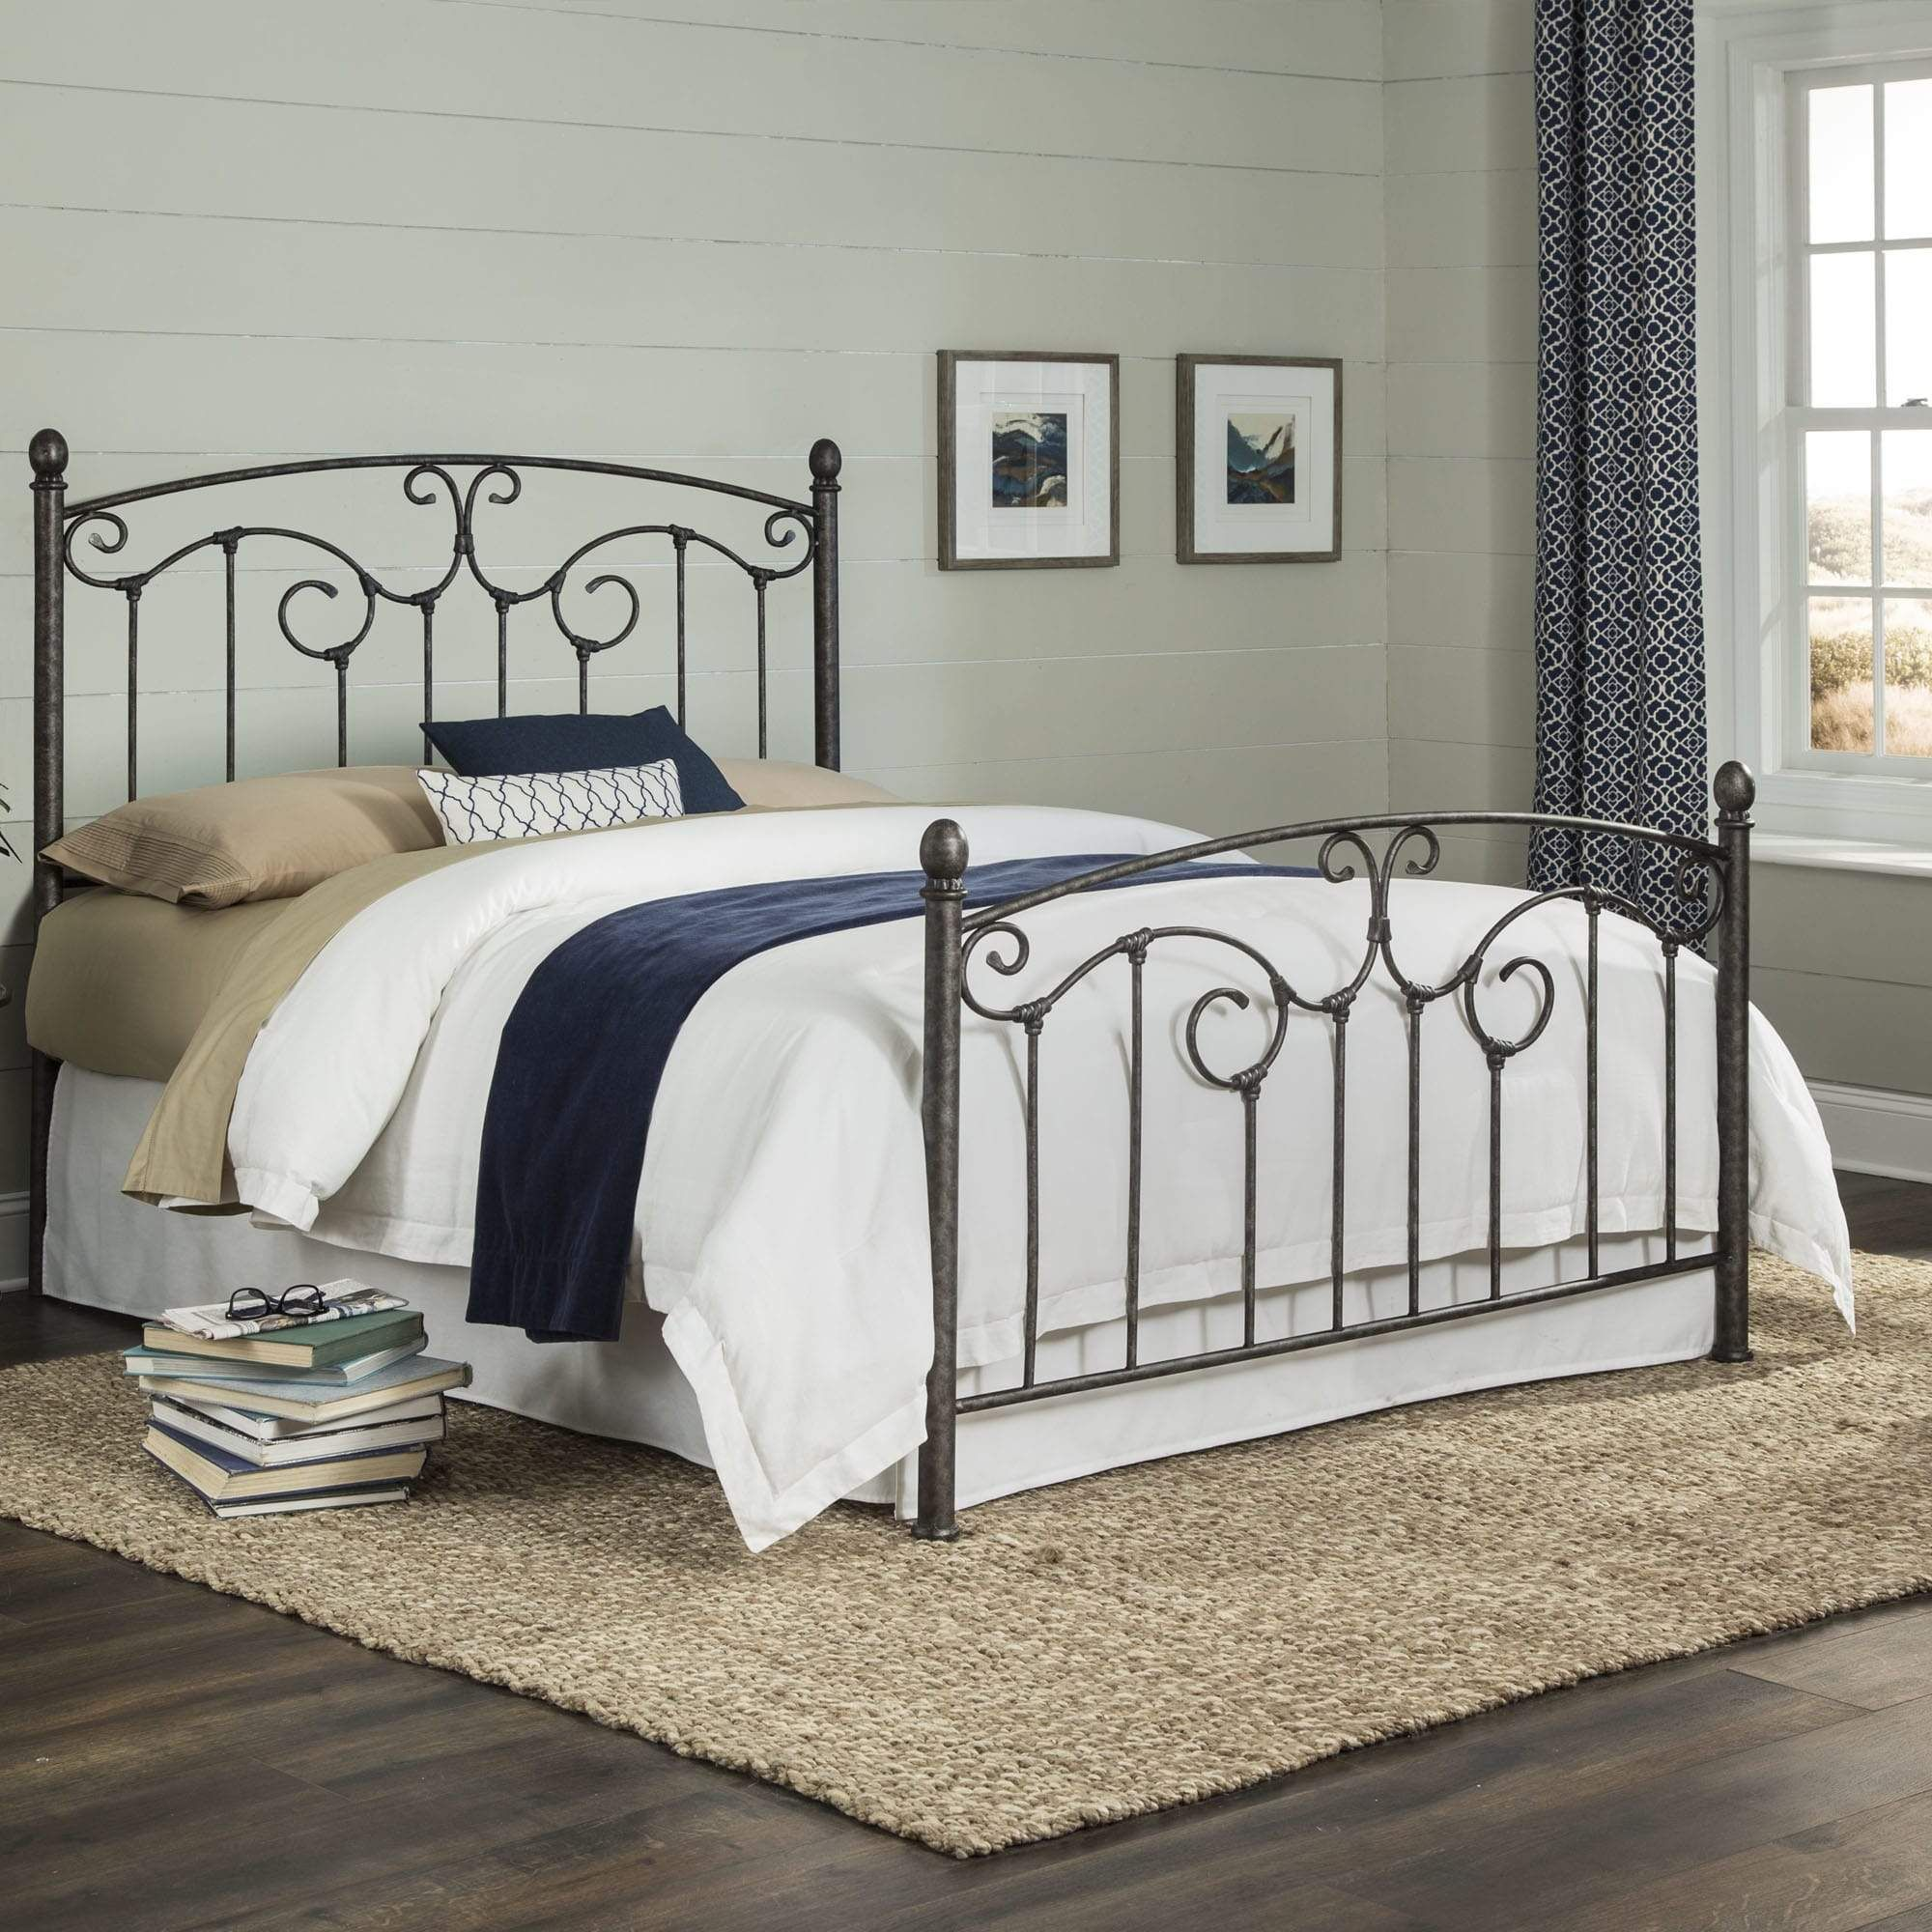 twin for bed full walmart cal plans premier brackets universal of headboard platform black with size headboardfootboard nevis footboard and king metal frame collection queen